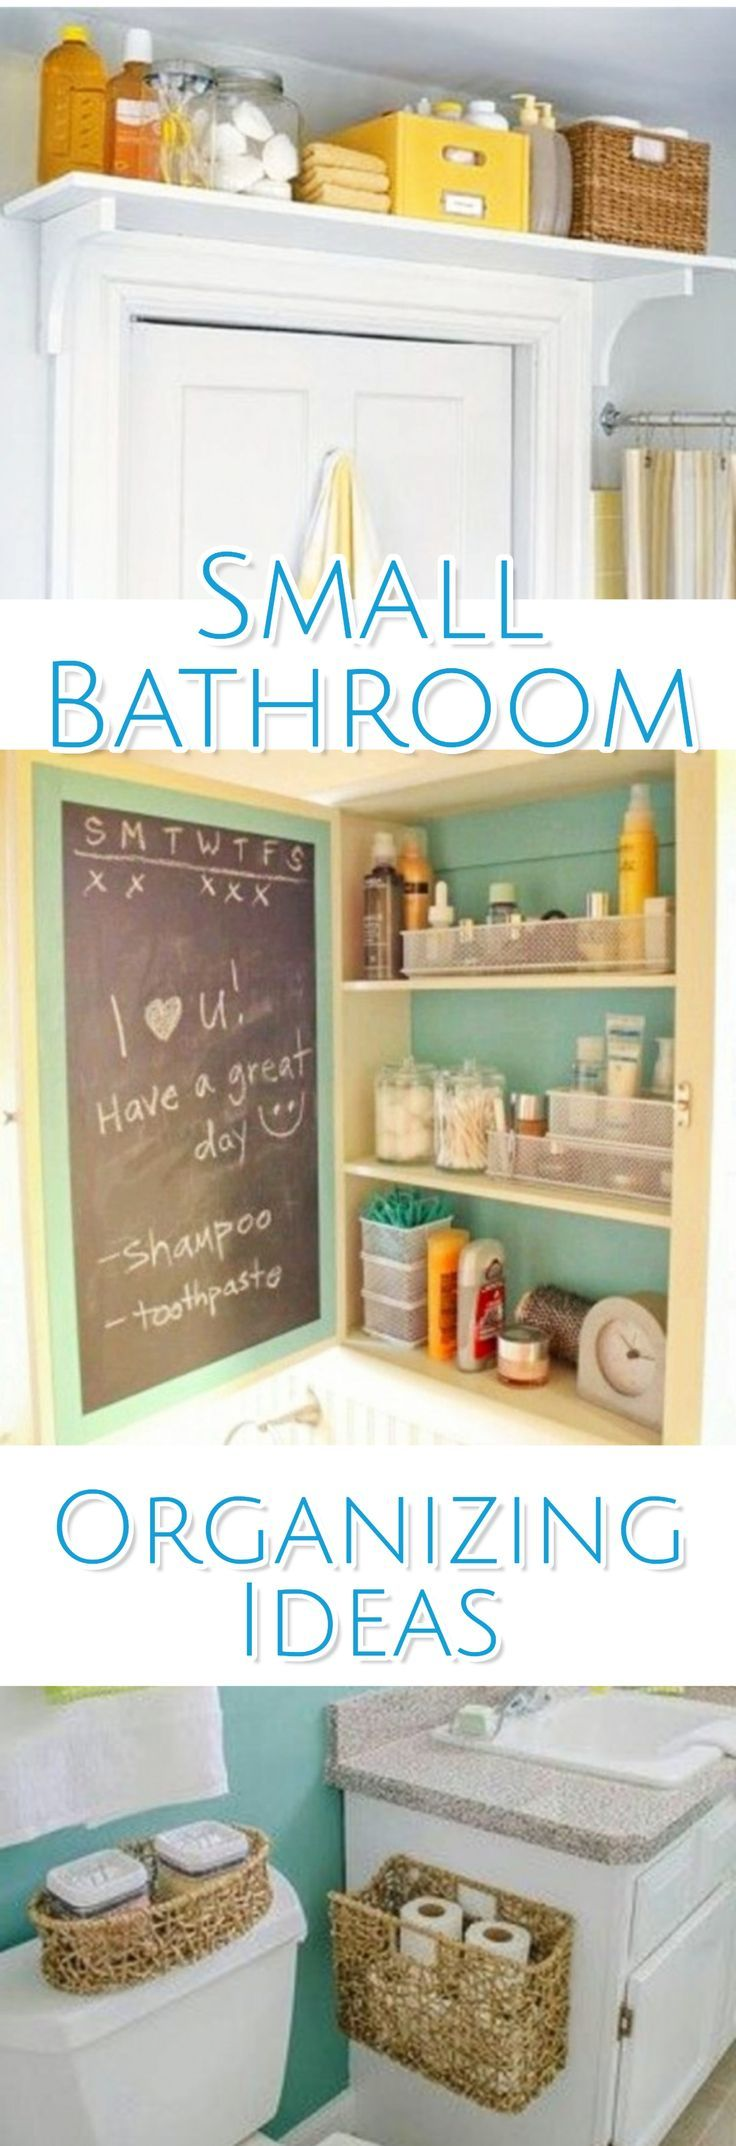 Small Bathroom Organizing Ideas   Creative Ways To Get More Space And More  Storage In A